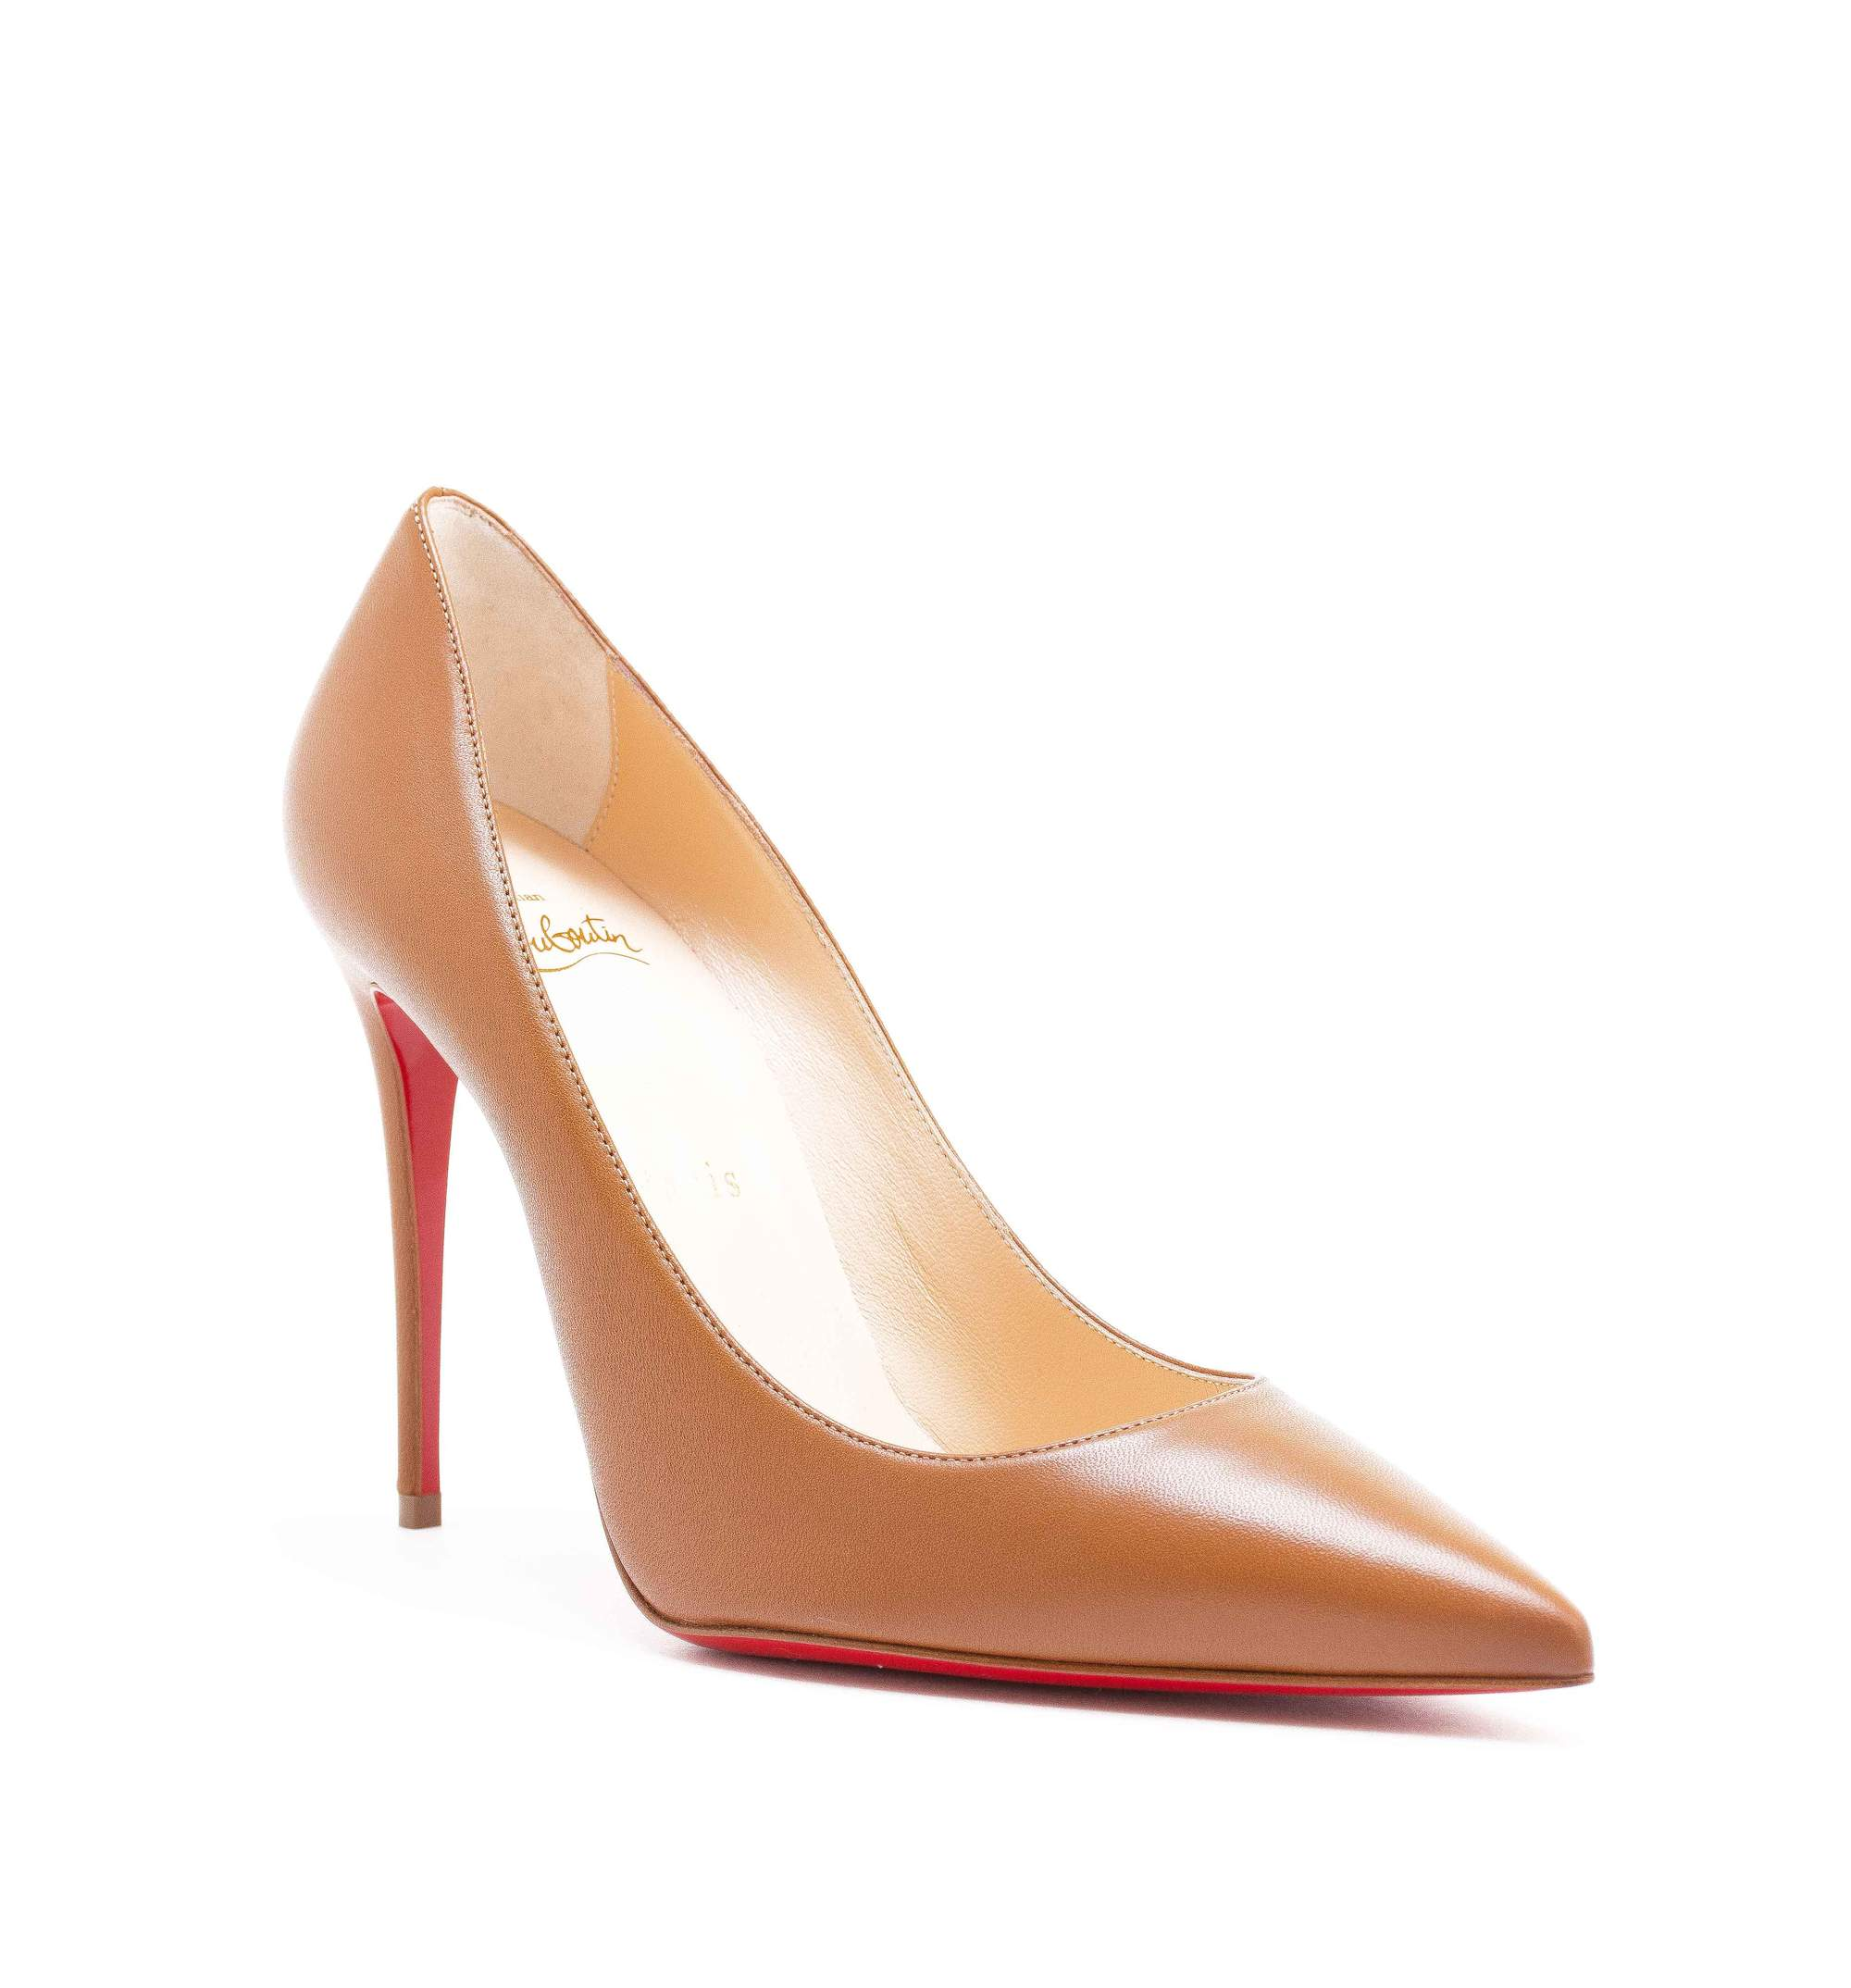 CHRISTIAN LOUBOUTIN KATE POINTY TOE PUMPS